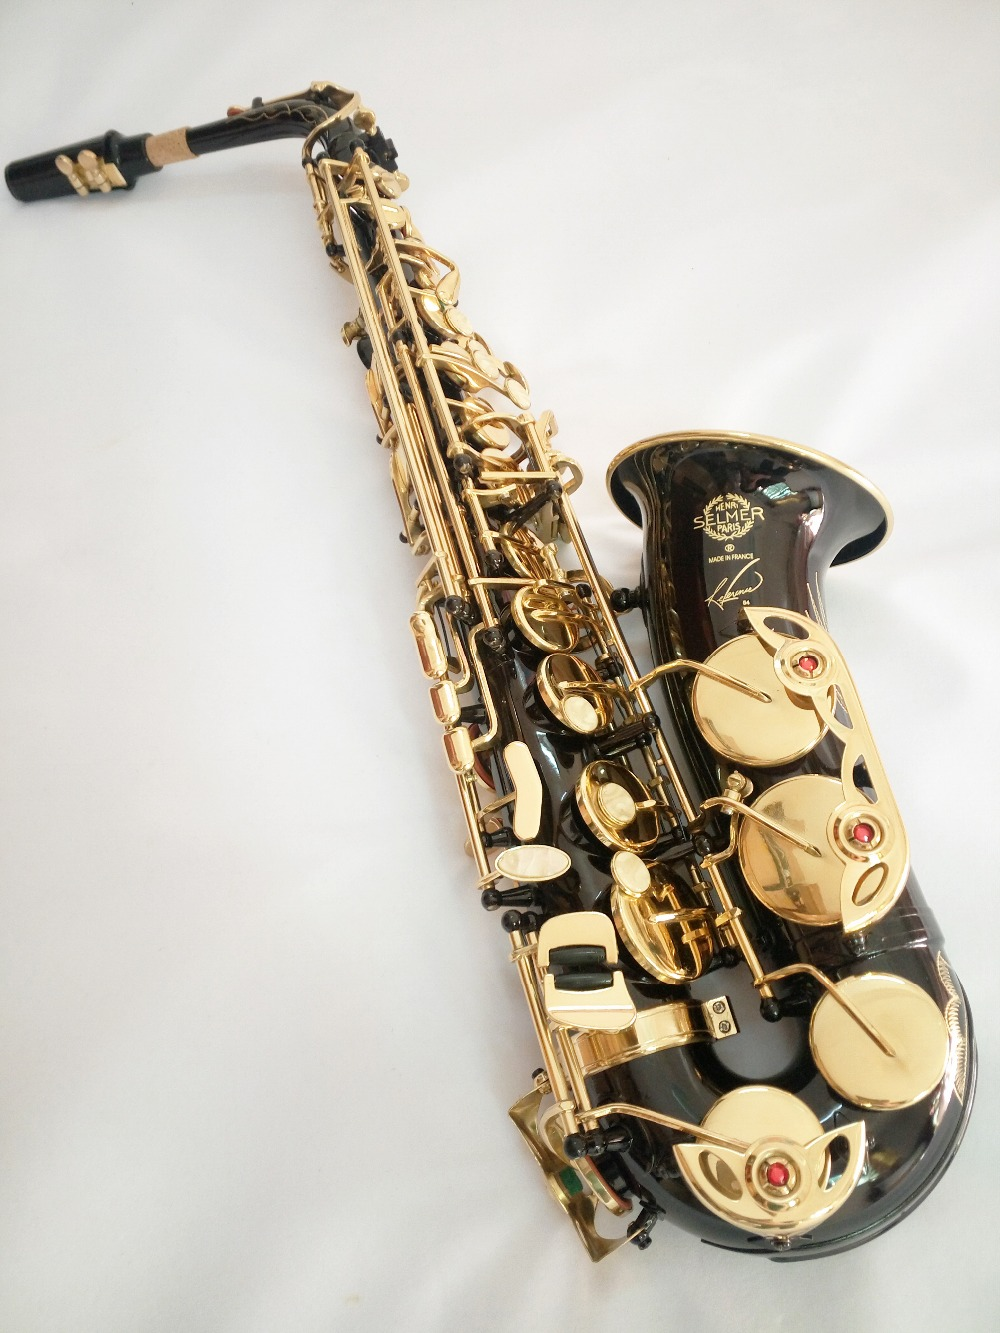 Instruments High Quality Saxophone Alto Sax Selmer 54 alto saxophone Musical Instruments Professional E flat Alto Saxophone selmer of france b flat tenor sax instruments shipping professional performance suitable for beginners